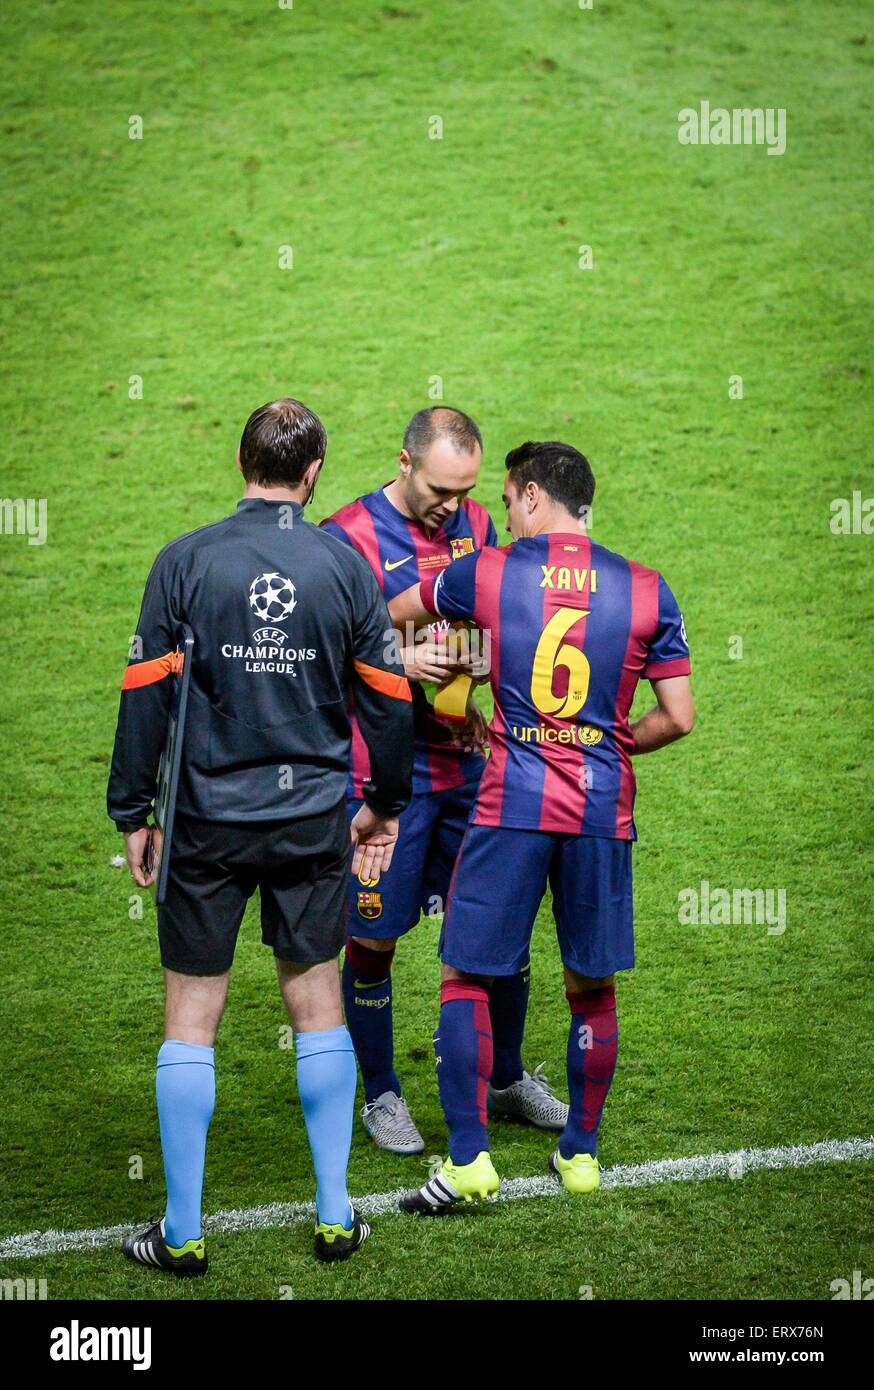 Xavi And Iniesta High Resolution Stock Photography And Images Alamy